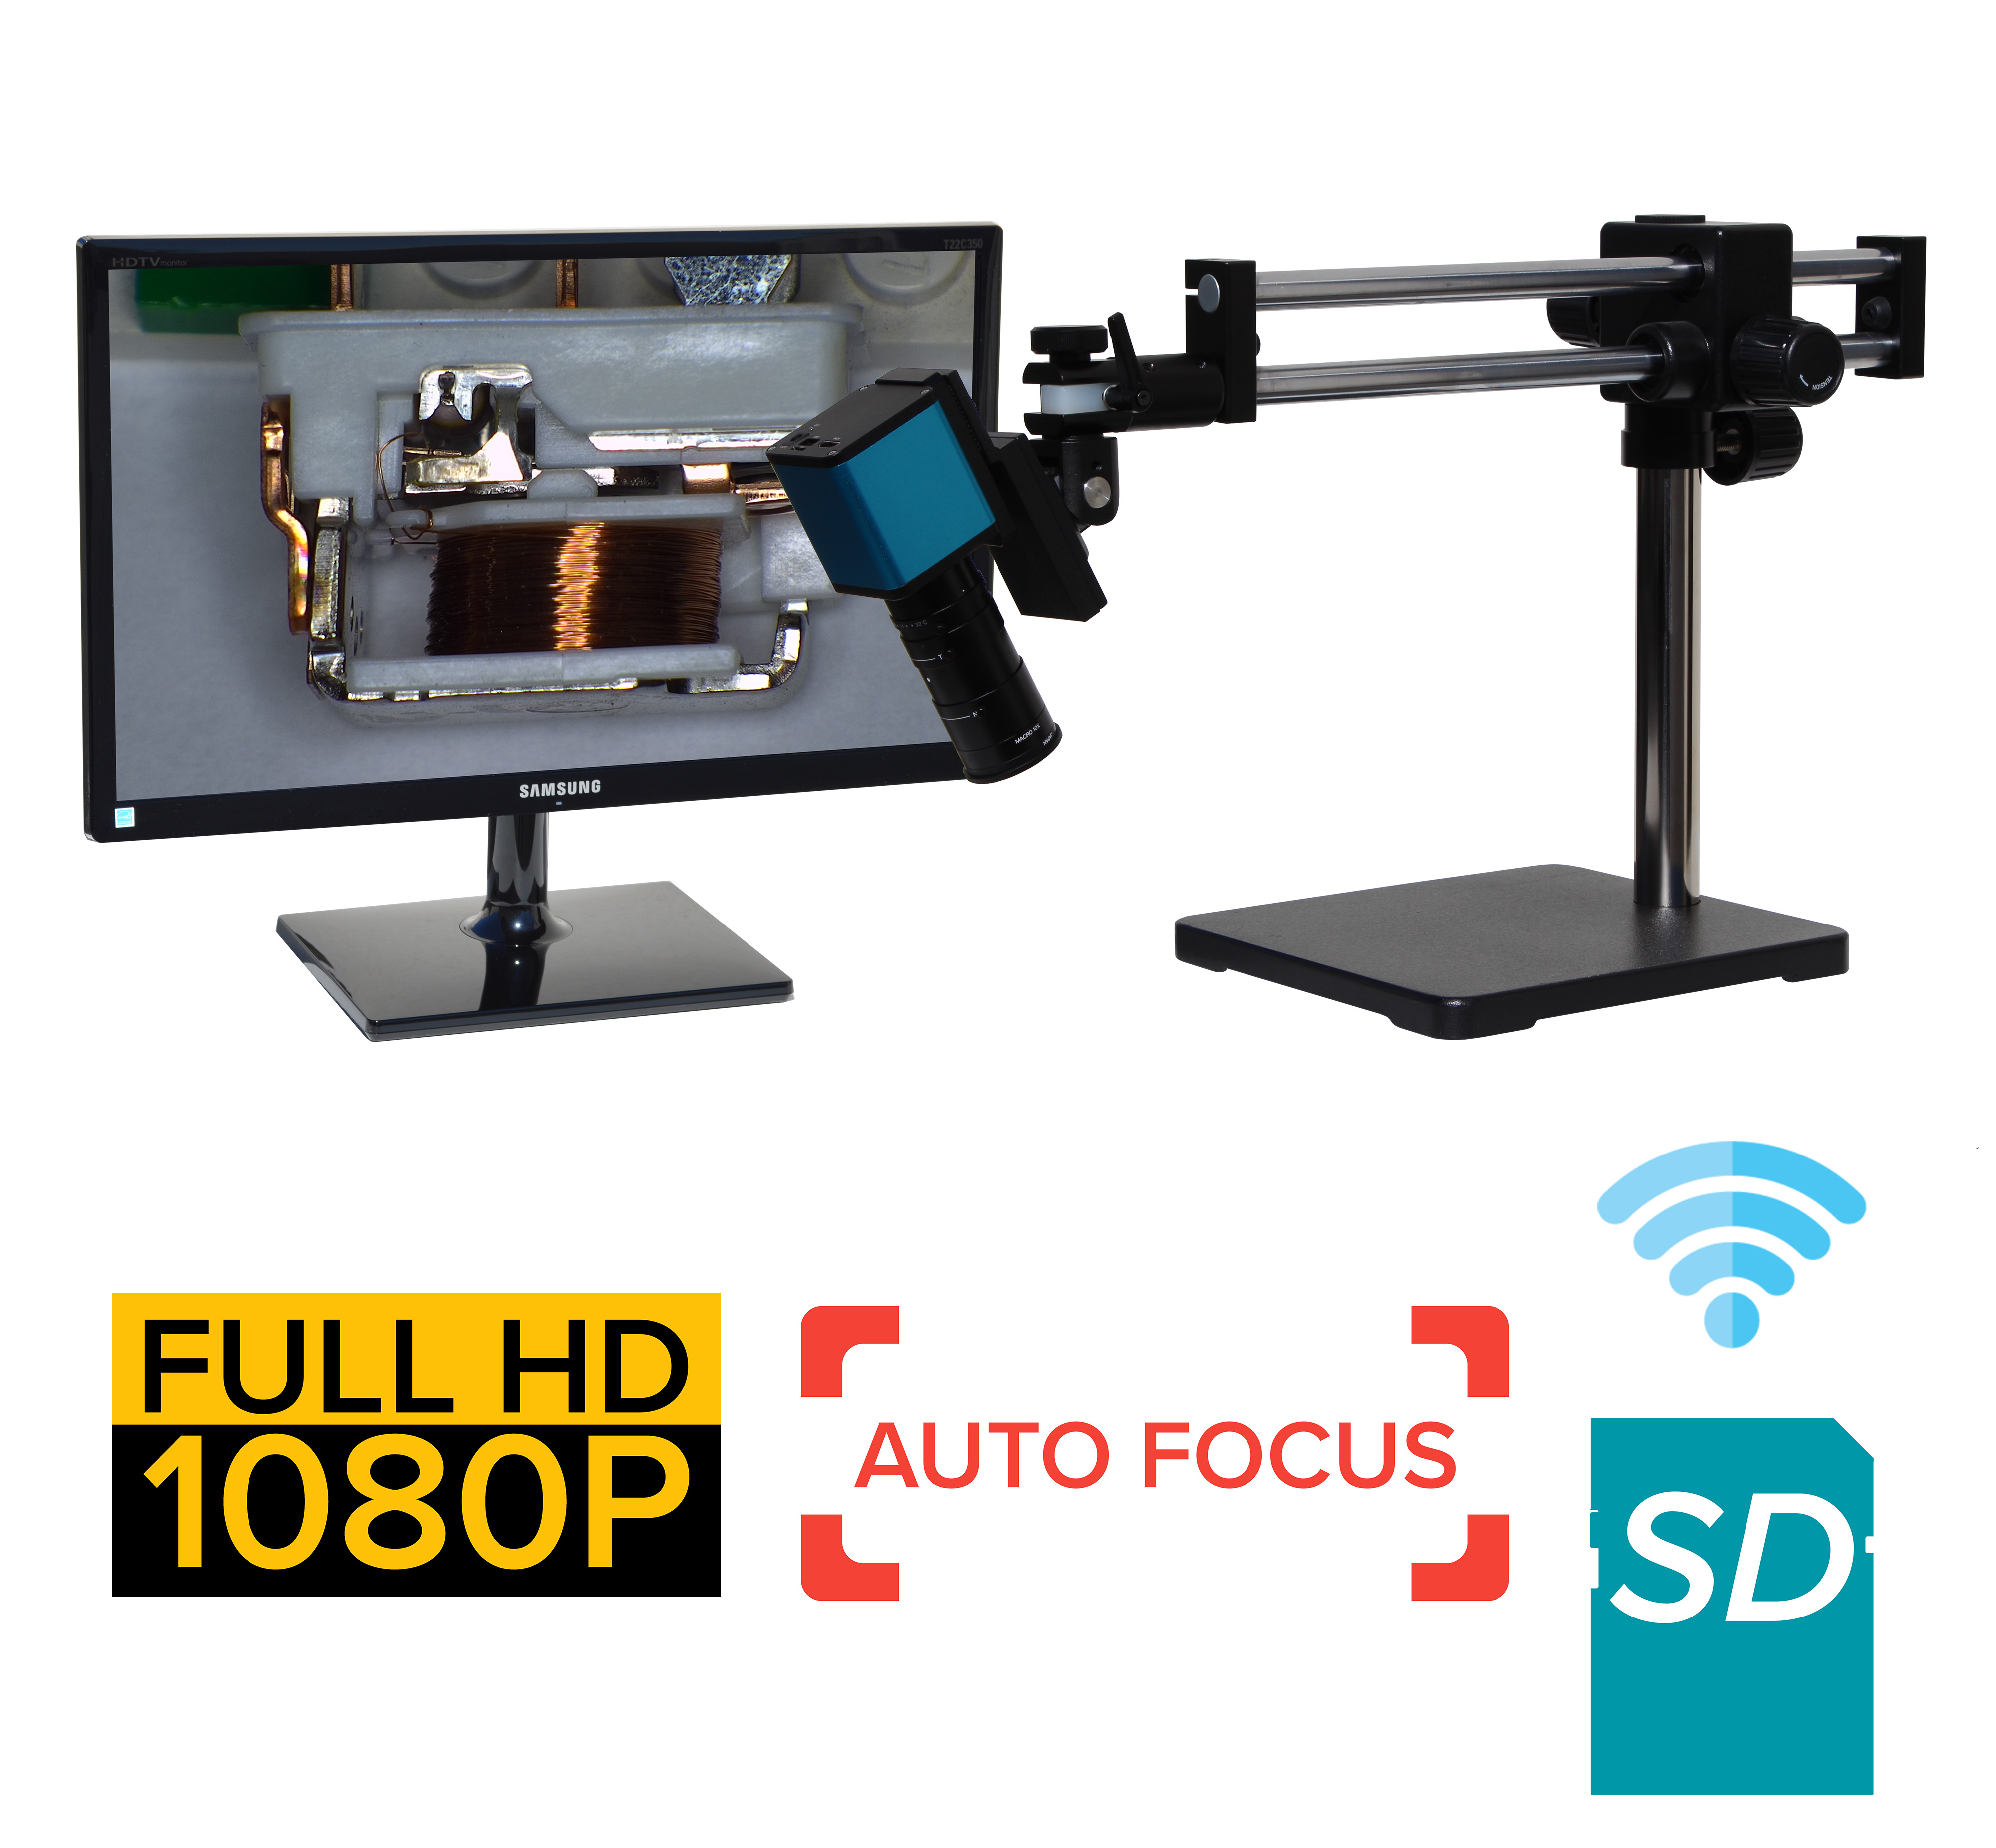 eHDAF207 series 2x-75x or 4x-150x Auto Focus + Wi-Fi + HD1080p + SD card [Start at $1700]